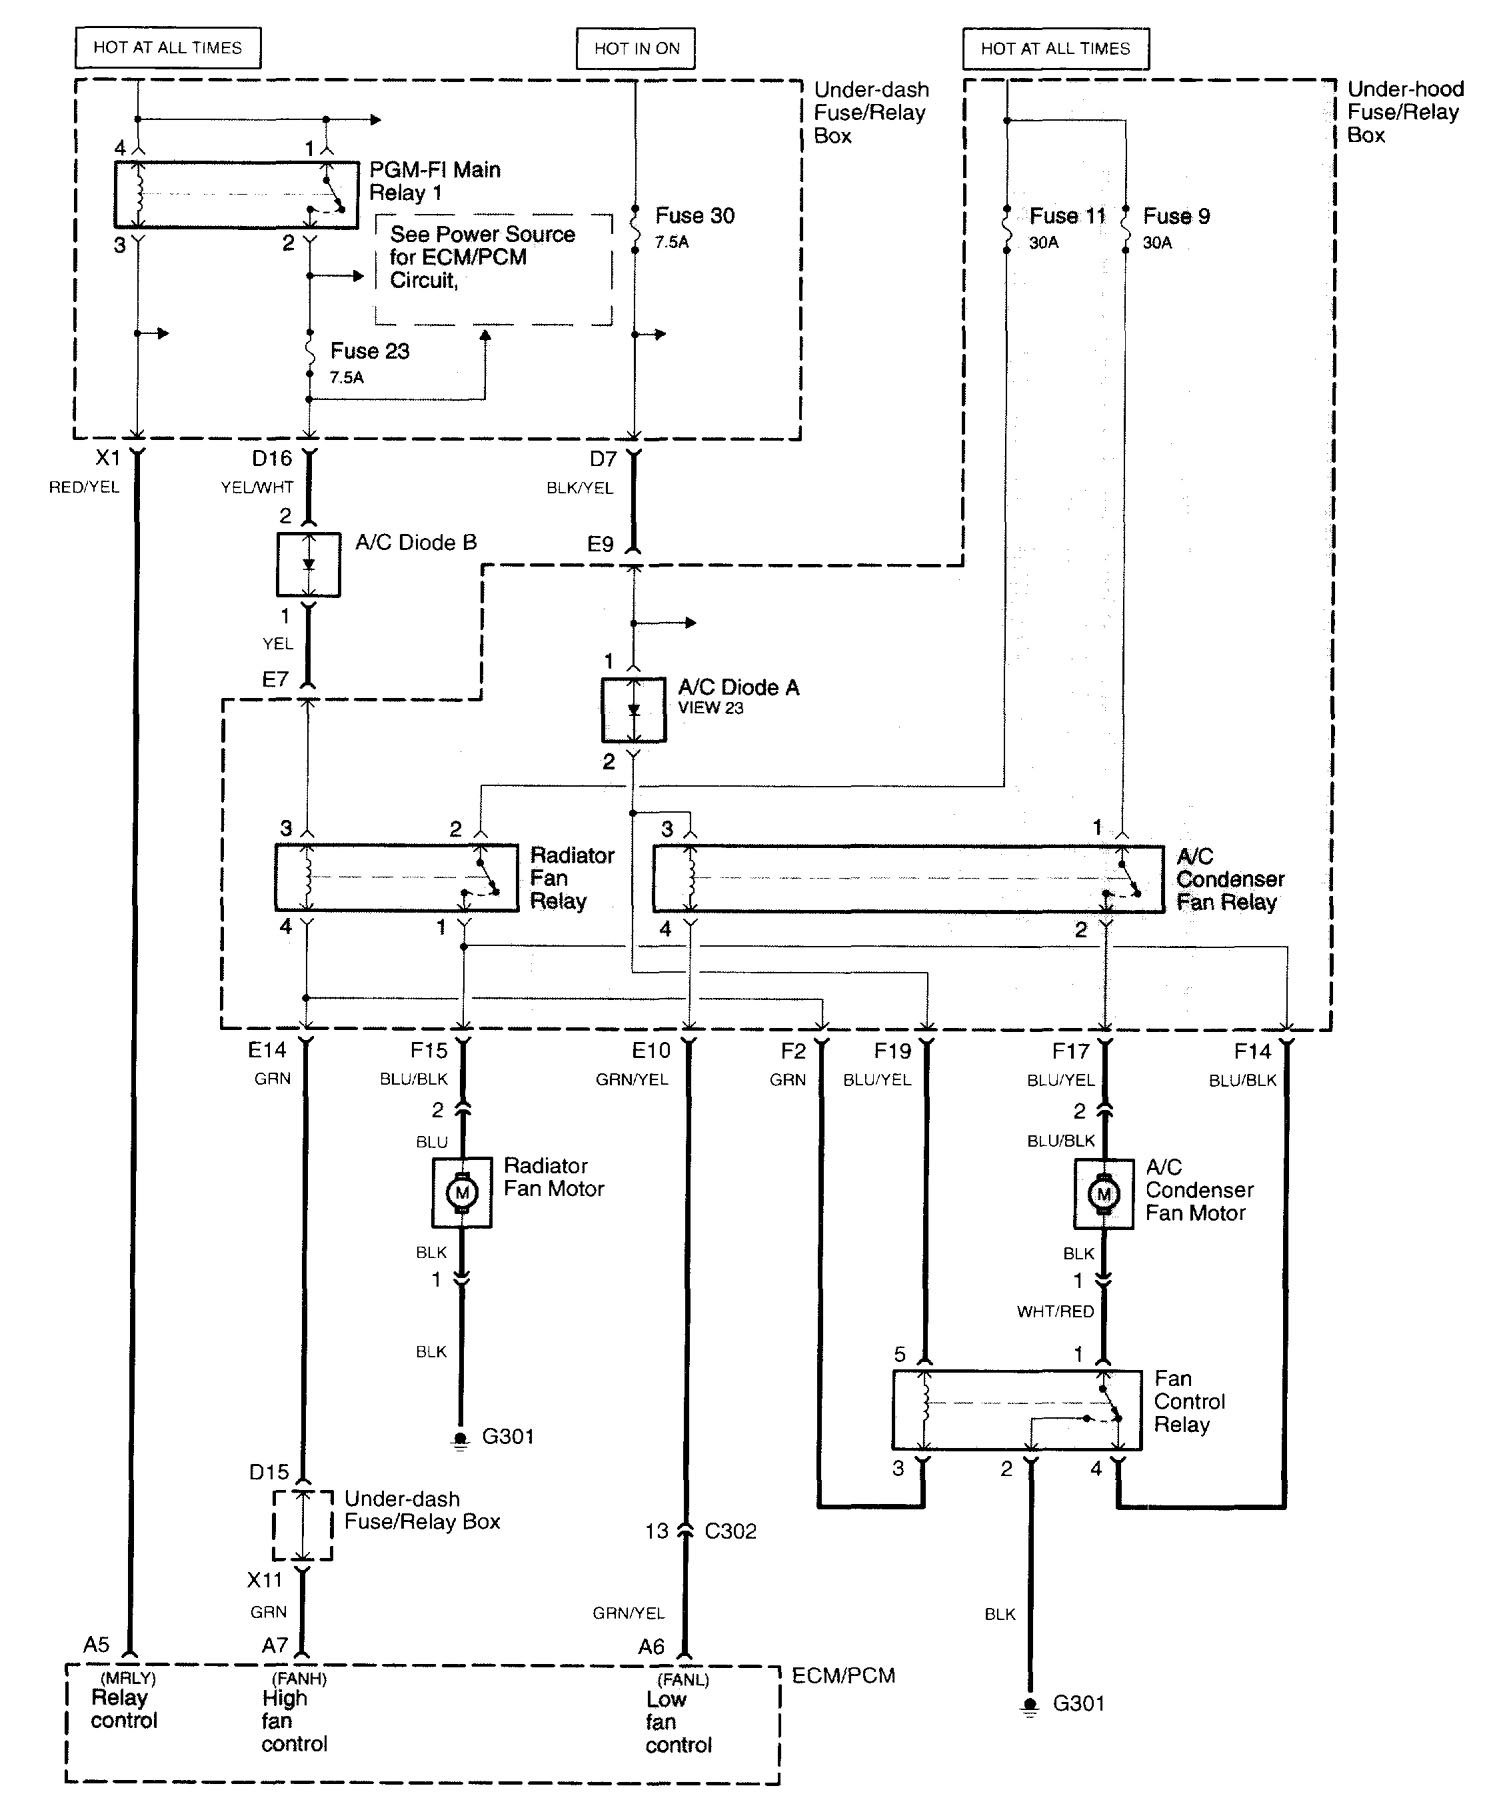 Acura TL (2006) - wiring diagrams - cooling fans - Carknowledge.info | Acura Tl Ac Wiring Diagram |  | Carknowledge.info